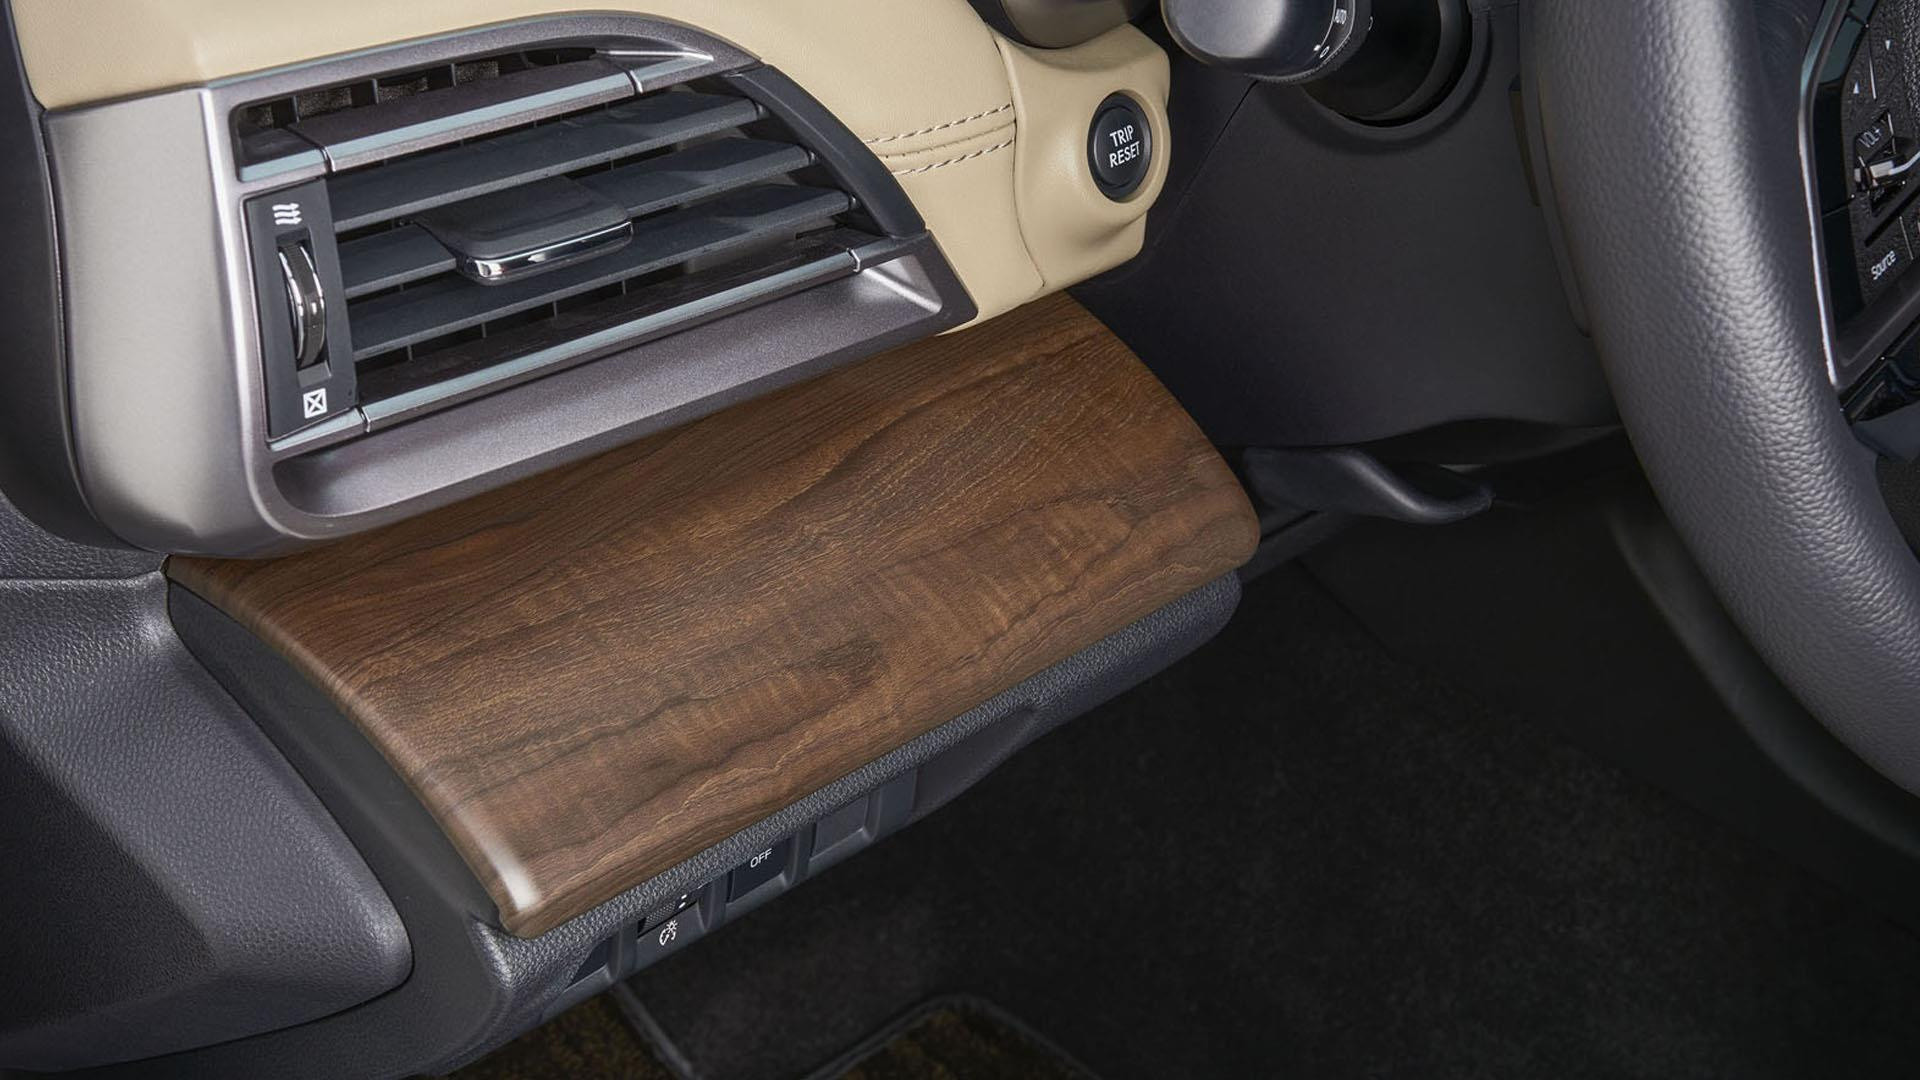 2020 Subaru Outback Interior Trim Kit - Woodgrain. Upgrade ...